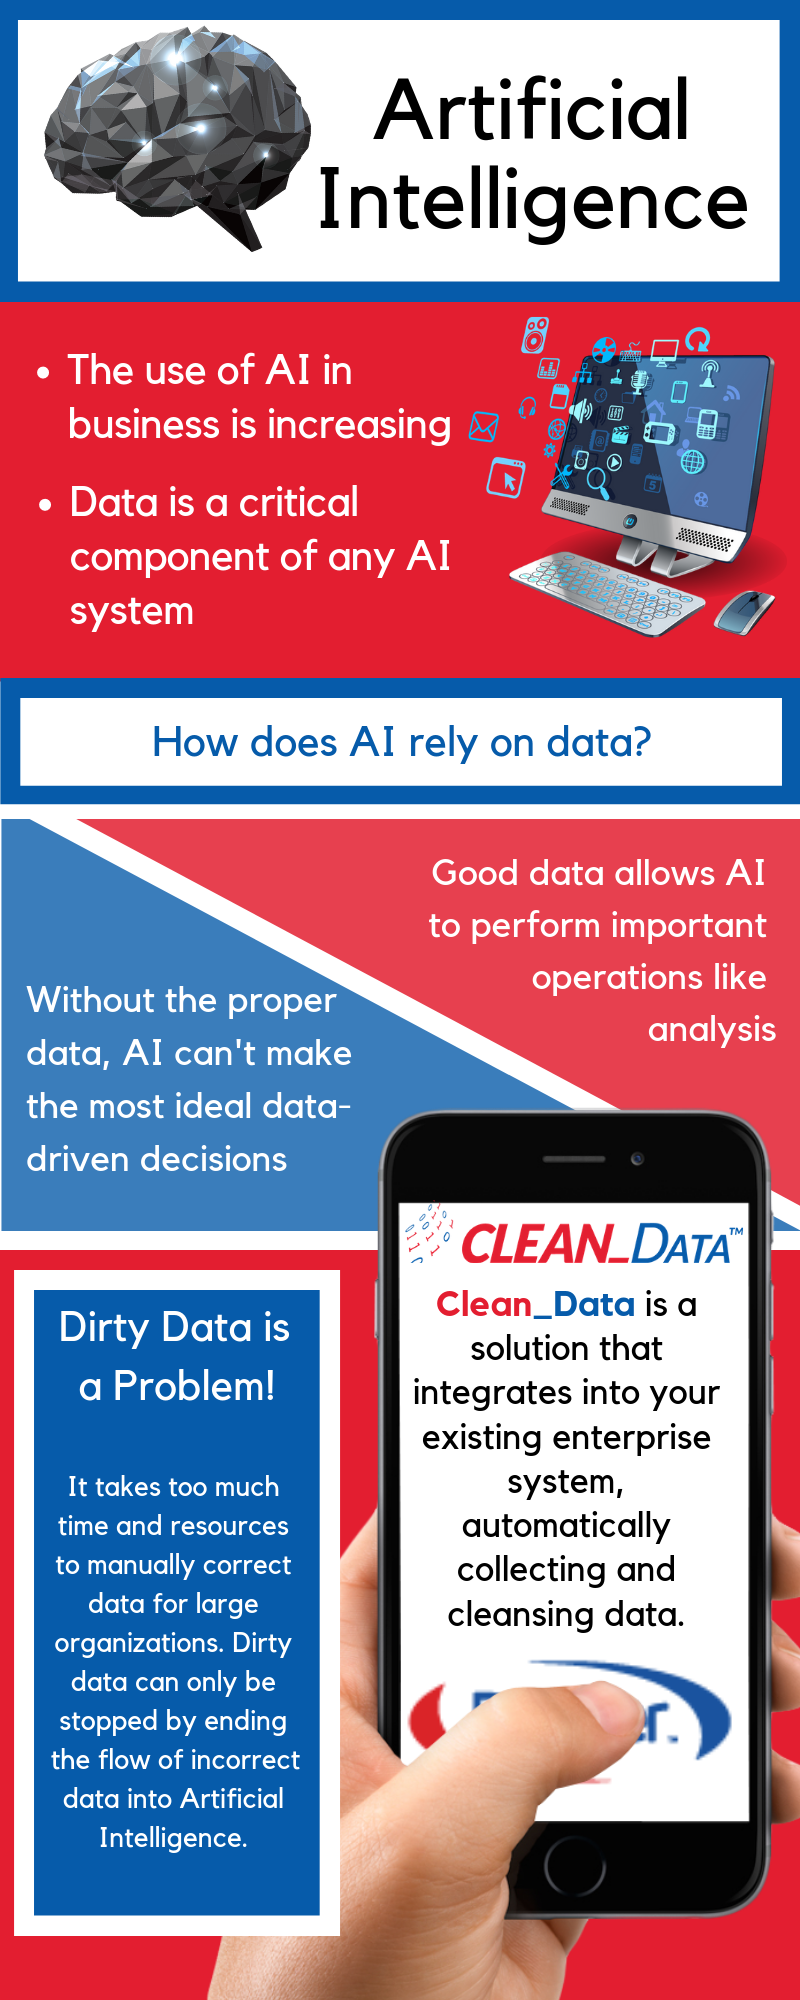 The use of AI in business is increasing & organizations are finding new ways to implement this technology to improve their bottom line. AI needs CLEAN_Data